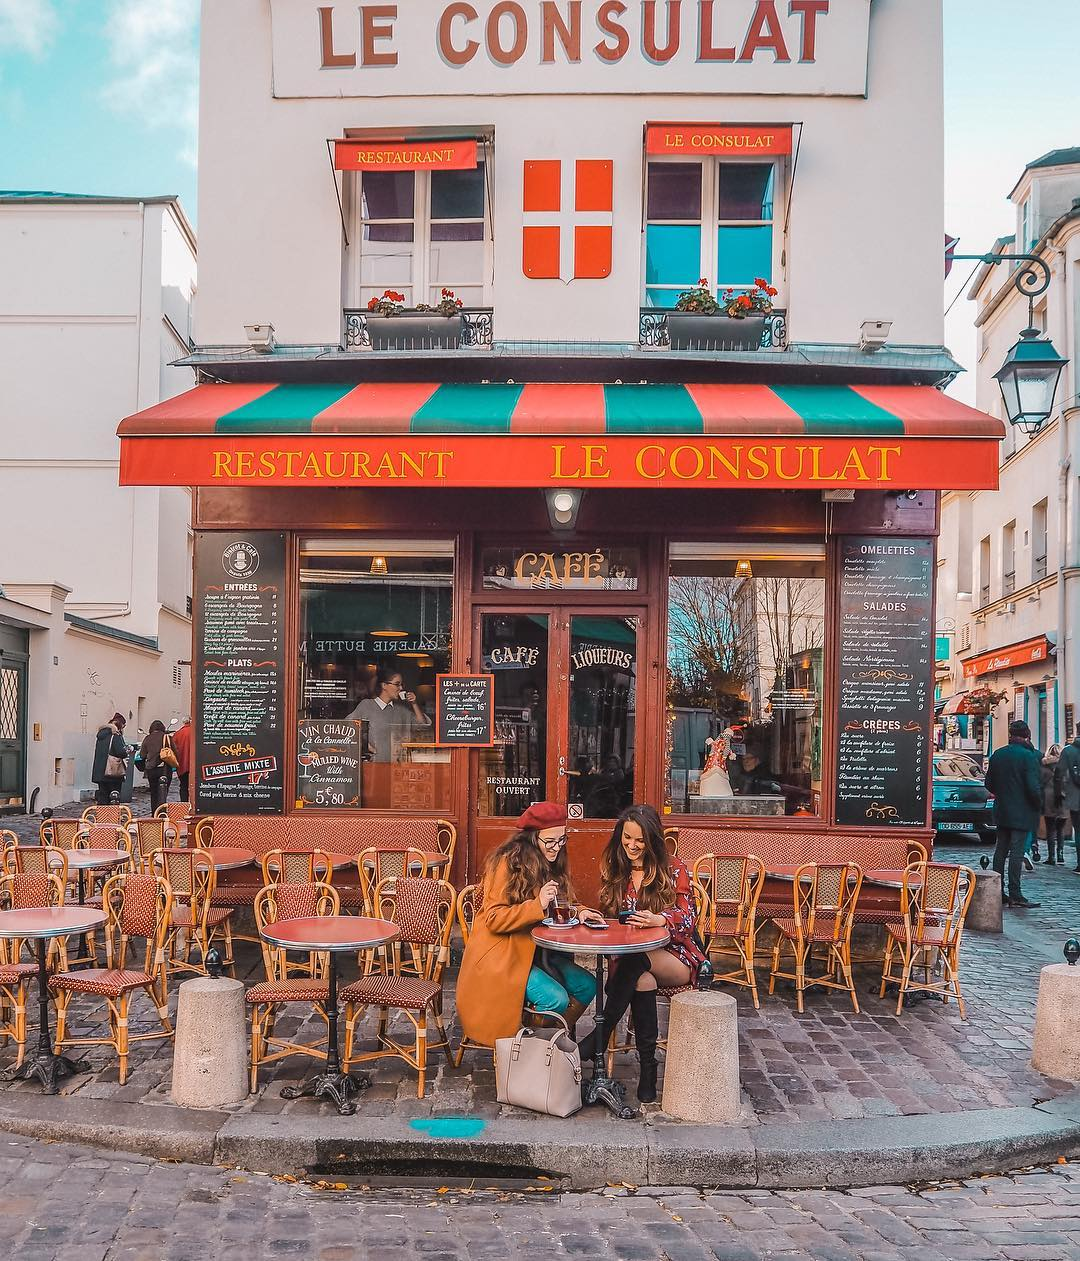 12 Best Photo Spots in Paris For Epic Instagram Shots - Le Consulat